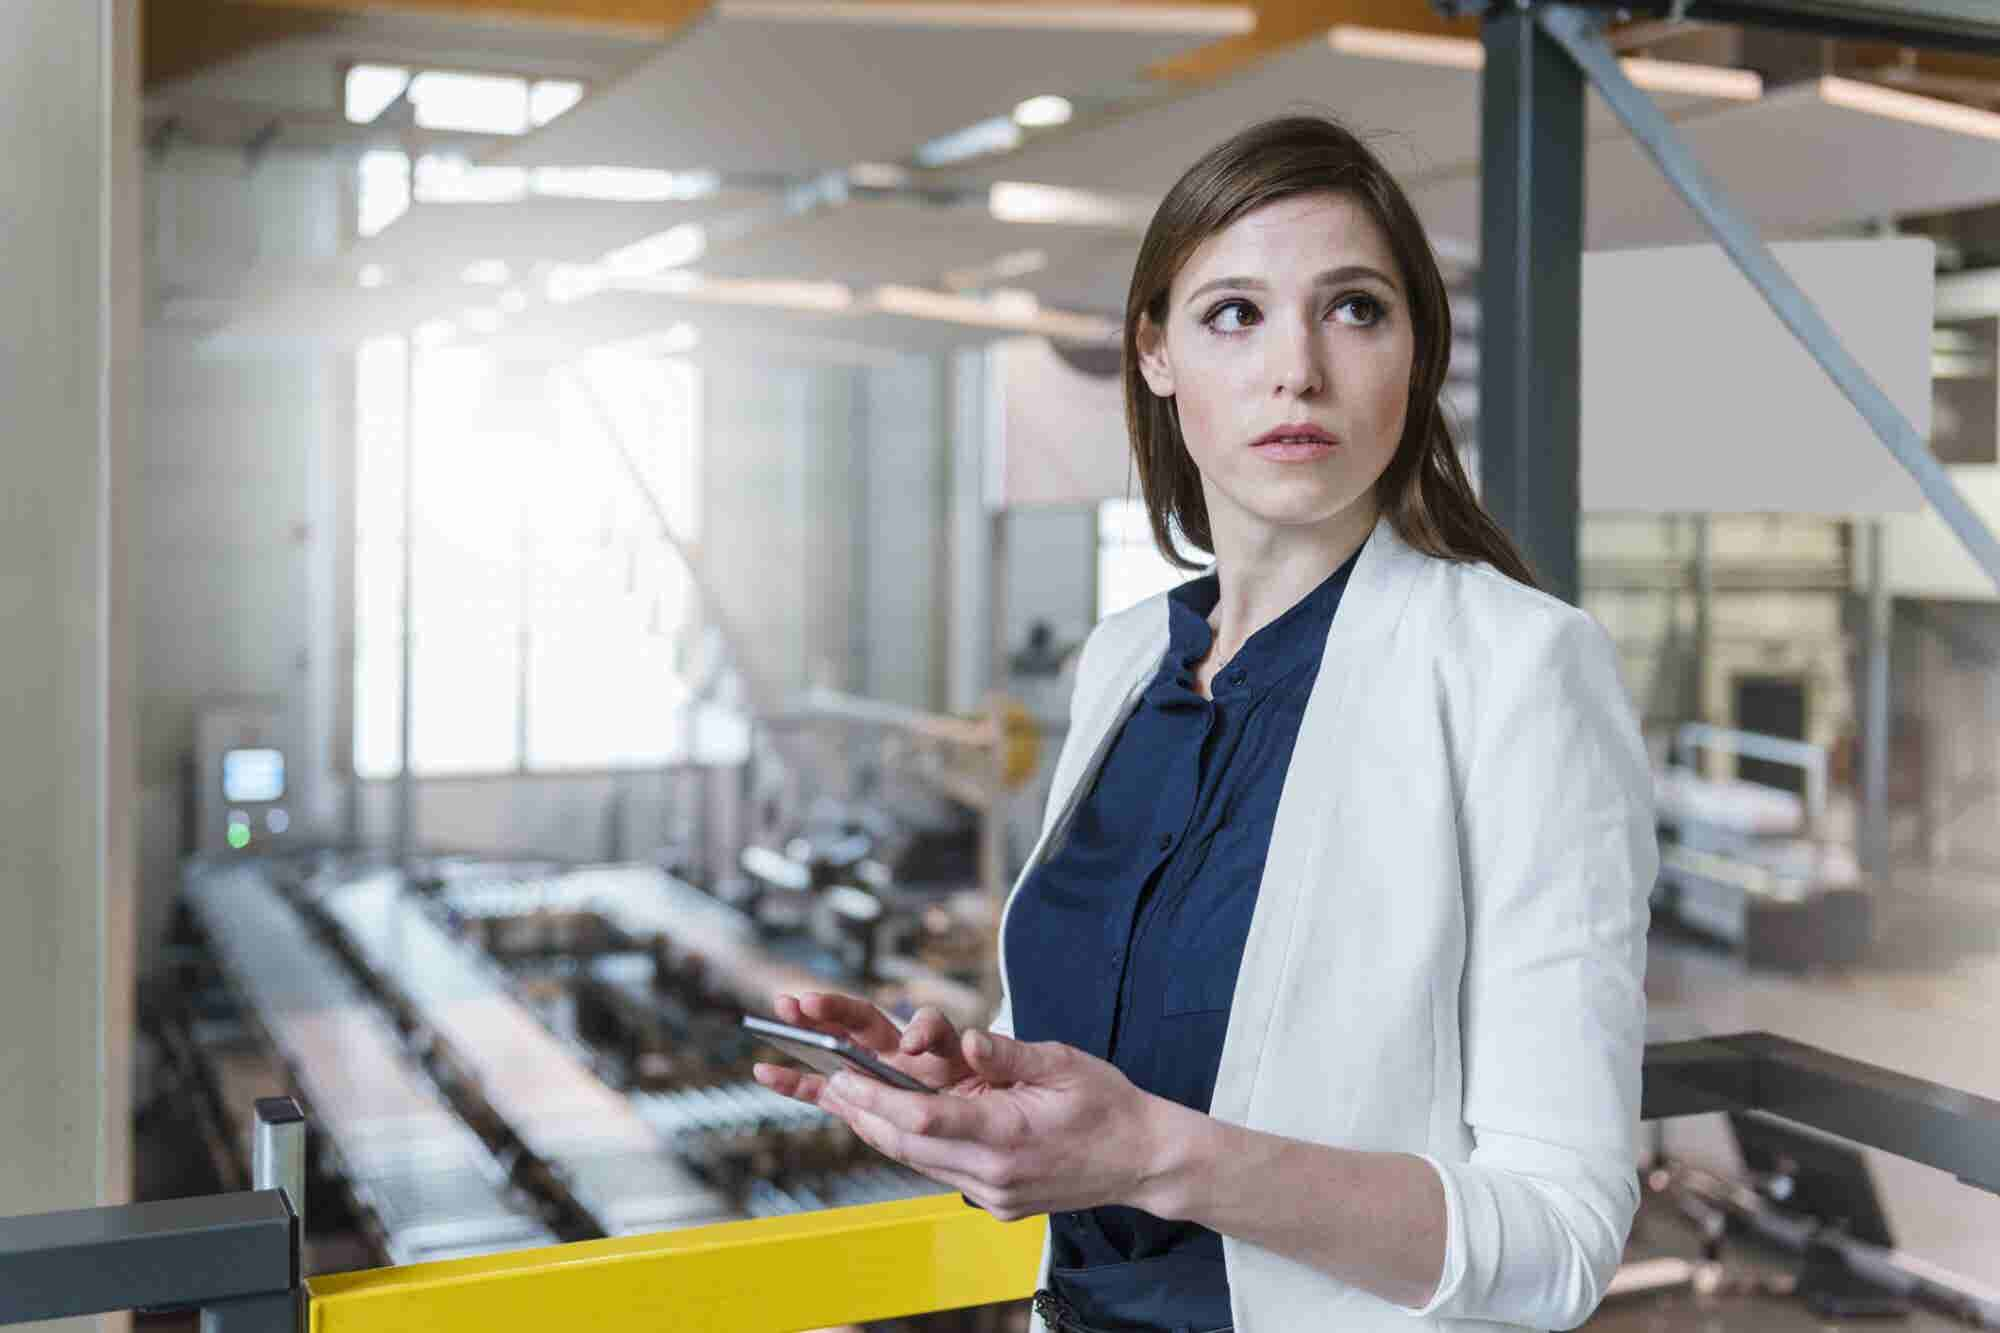 As a Woman Business Owner, You May Find It Hard to Confidently Take on the Role of CEO